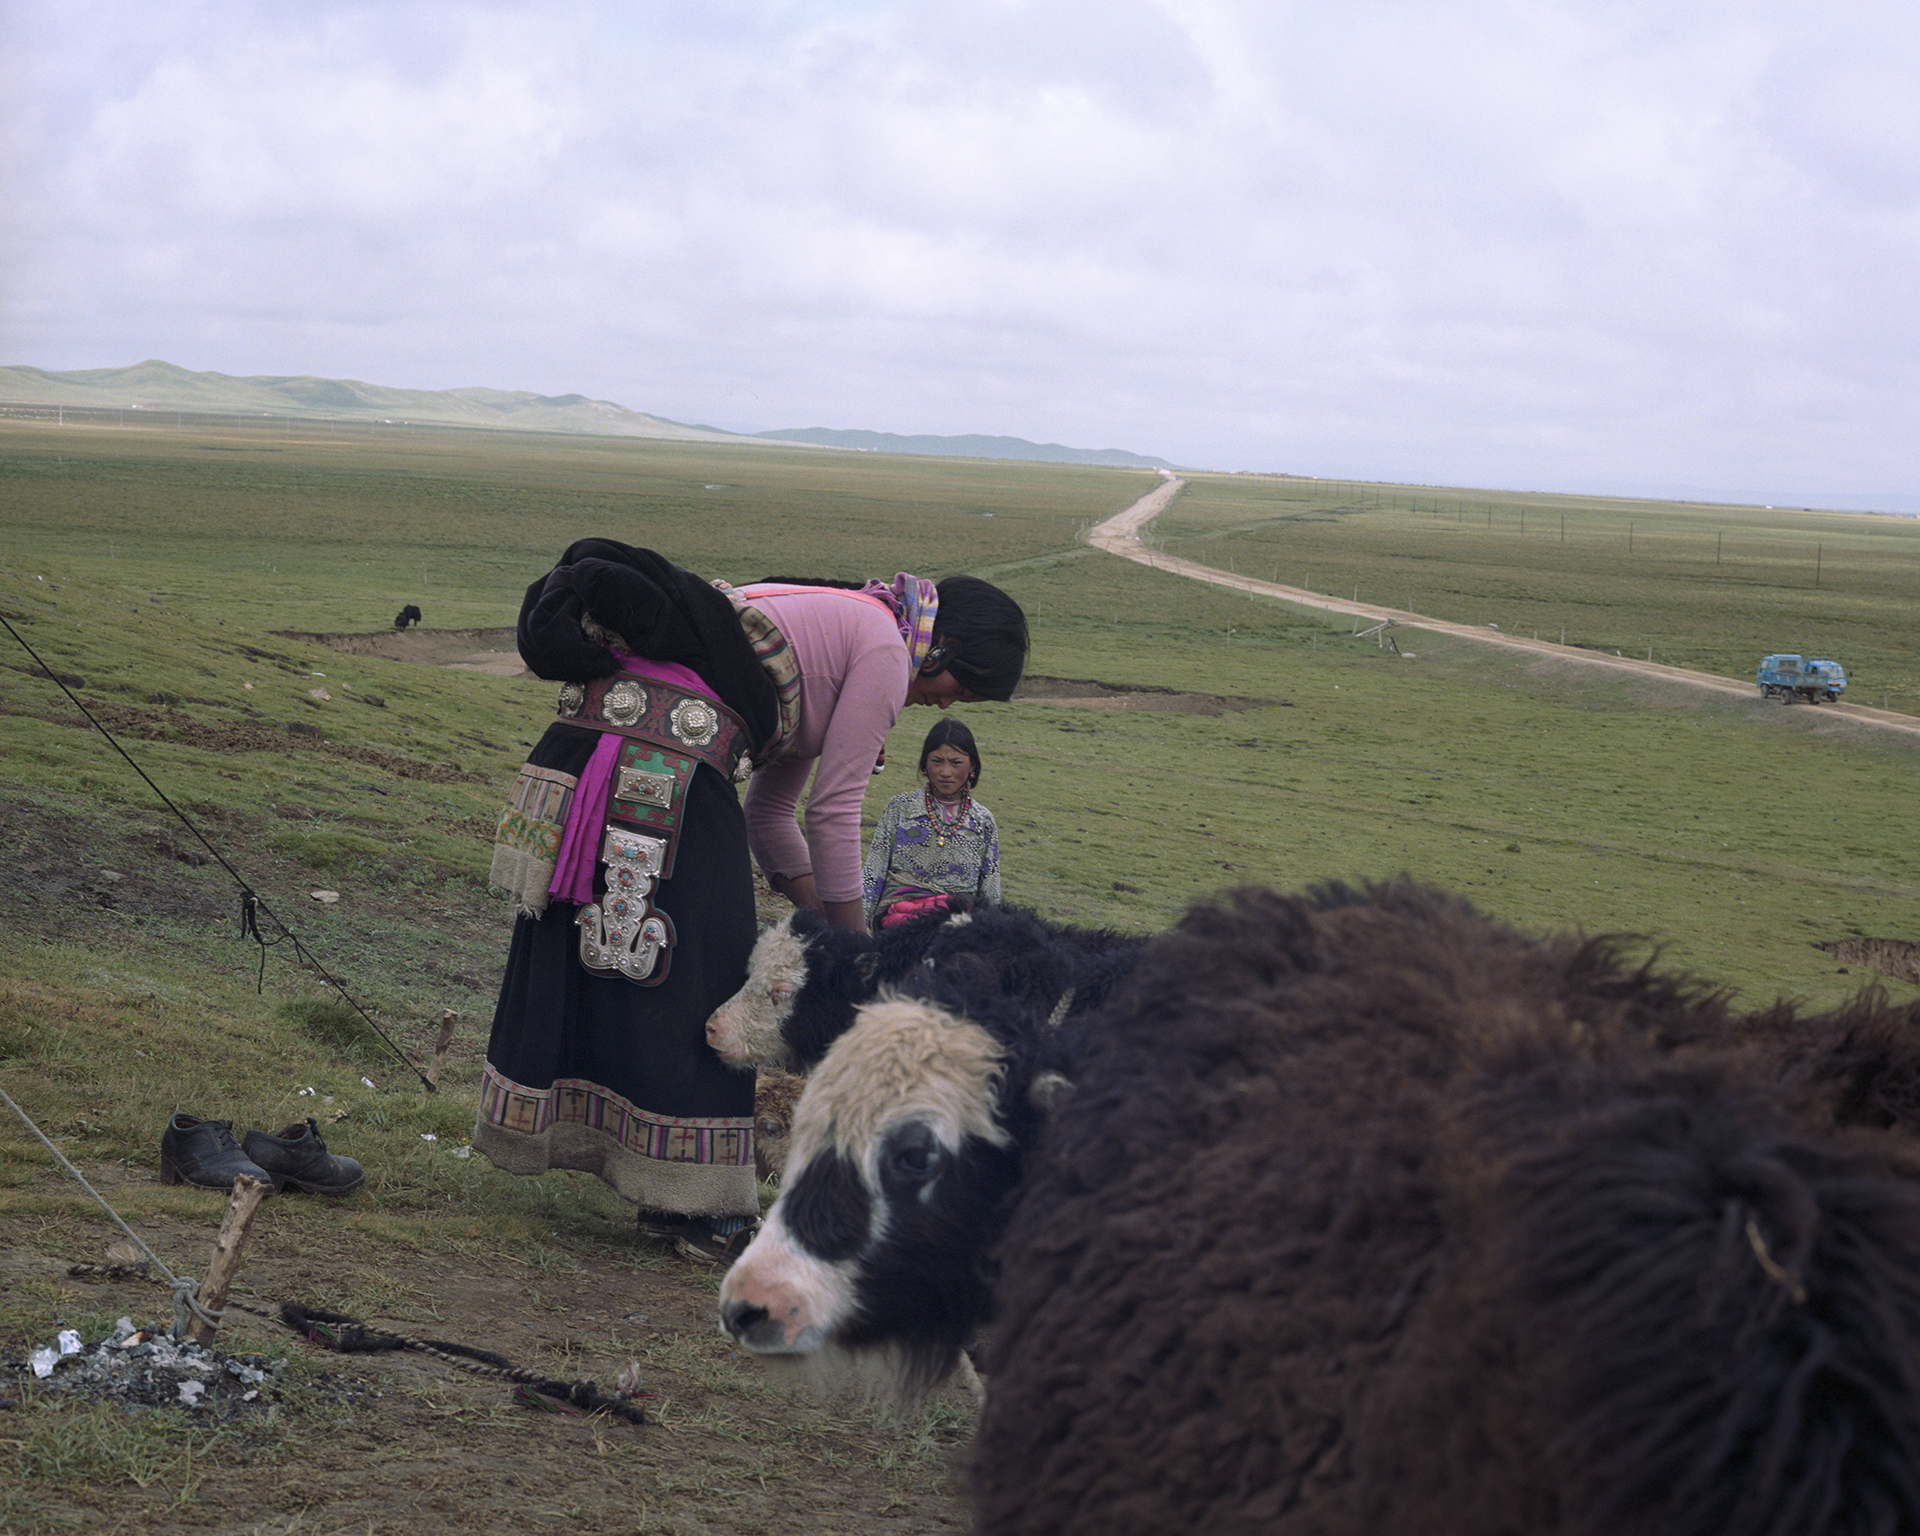 2007 Qinghai - the women tie the calfs to the rope. Their mothers will come soon to feed them. For the women an easy way to catch the yaks to milk them.